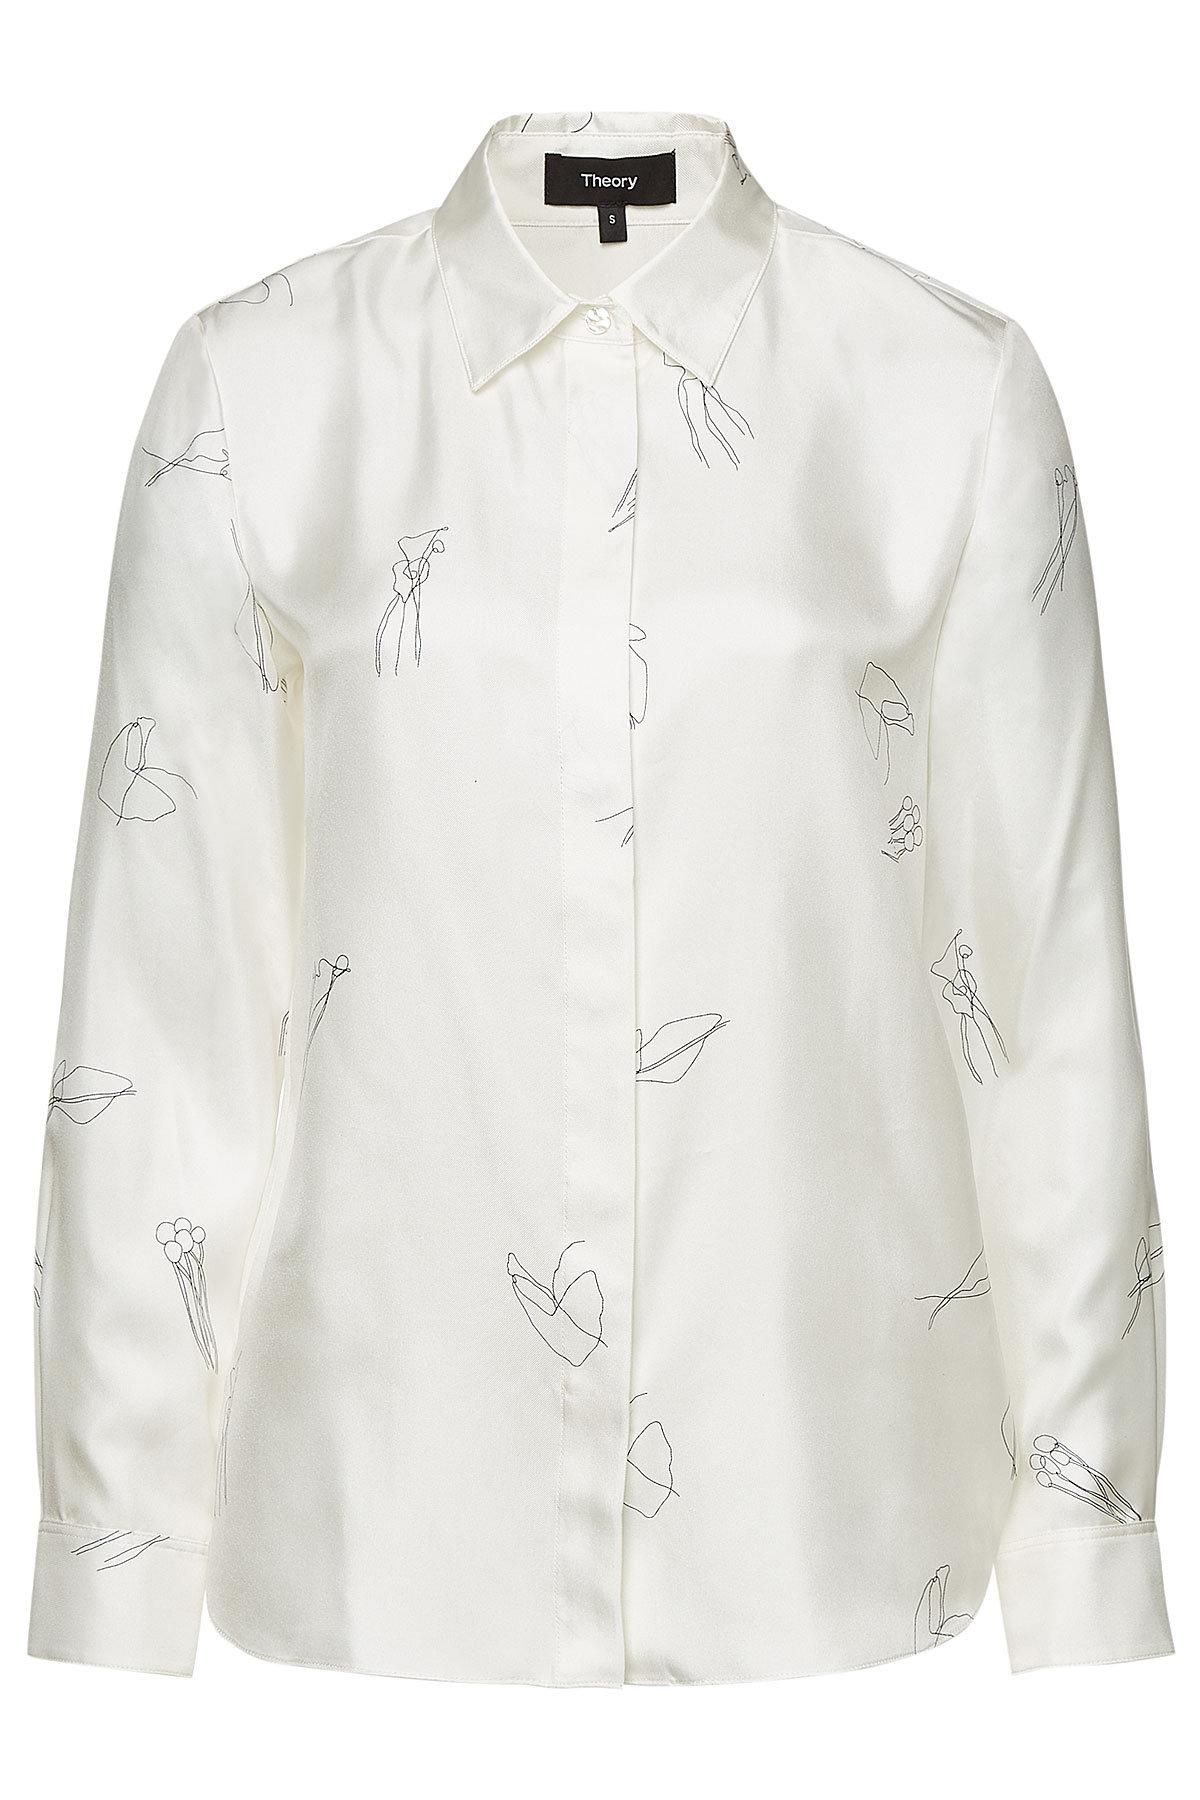 2fcdd944987 Theory - White Silk Twill Classic Straight Shirt With Abstract Print - Lyst.  View fullscreen